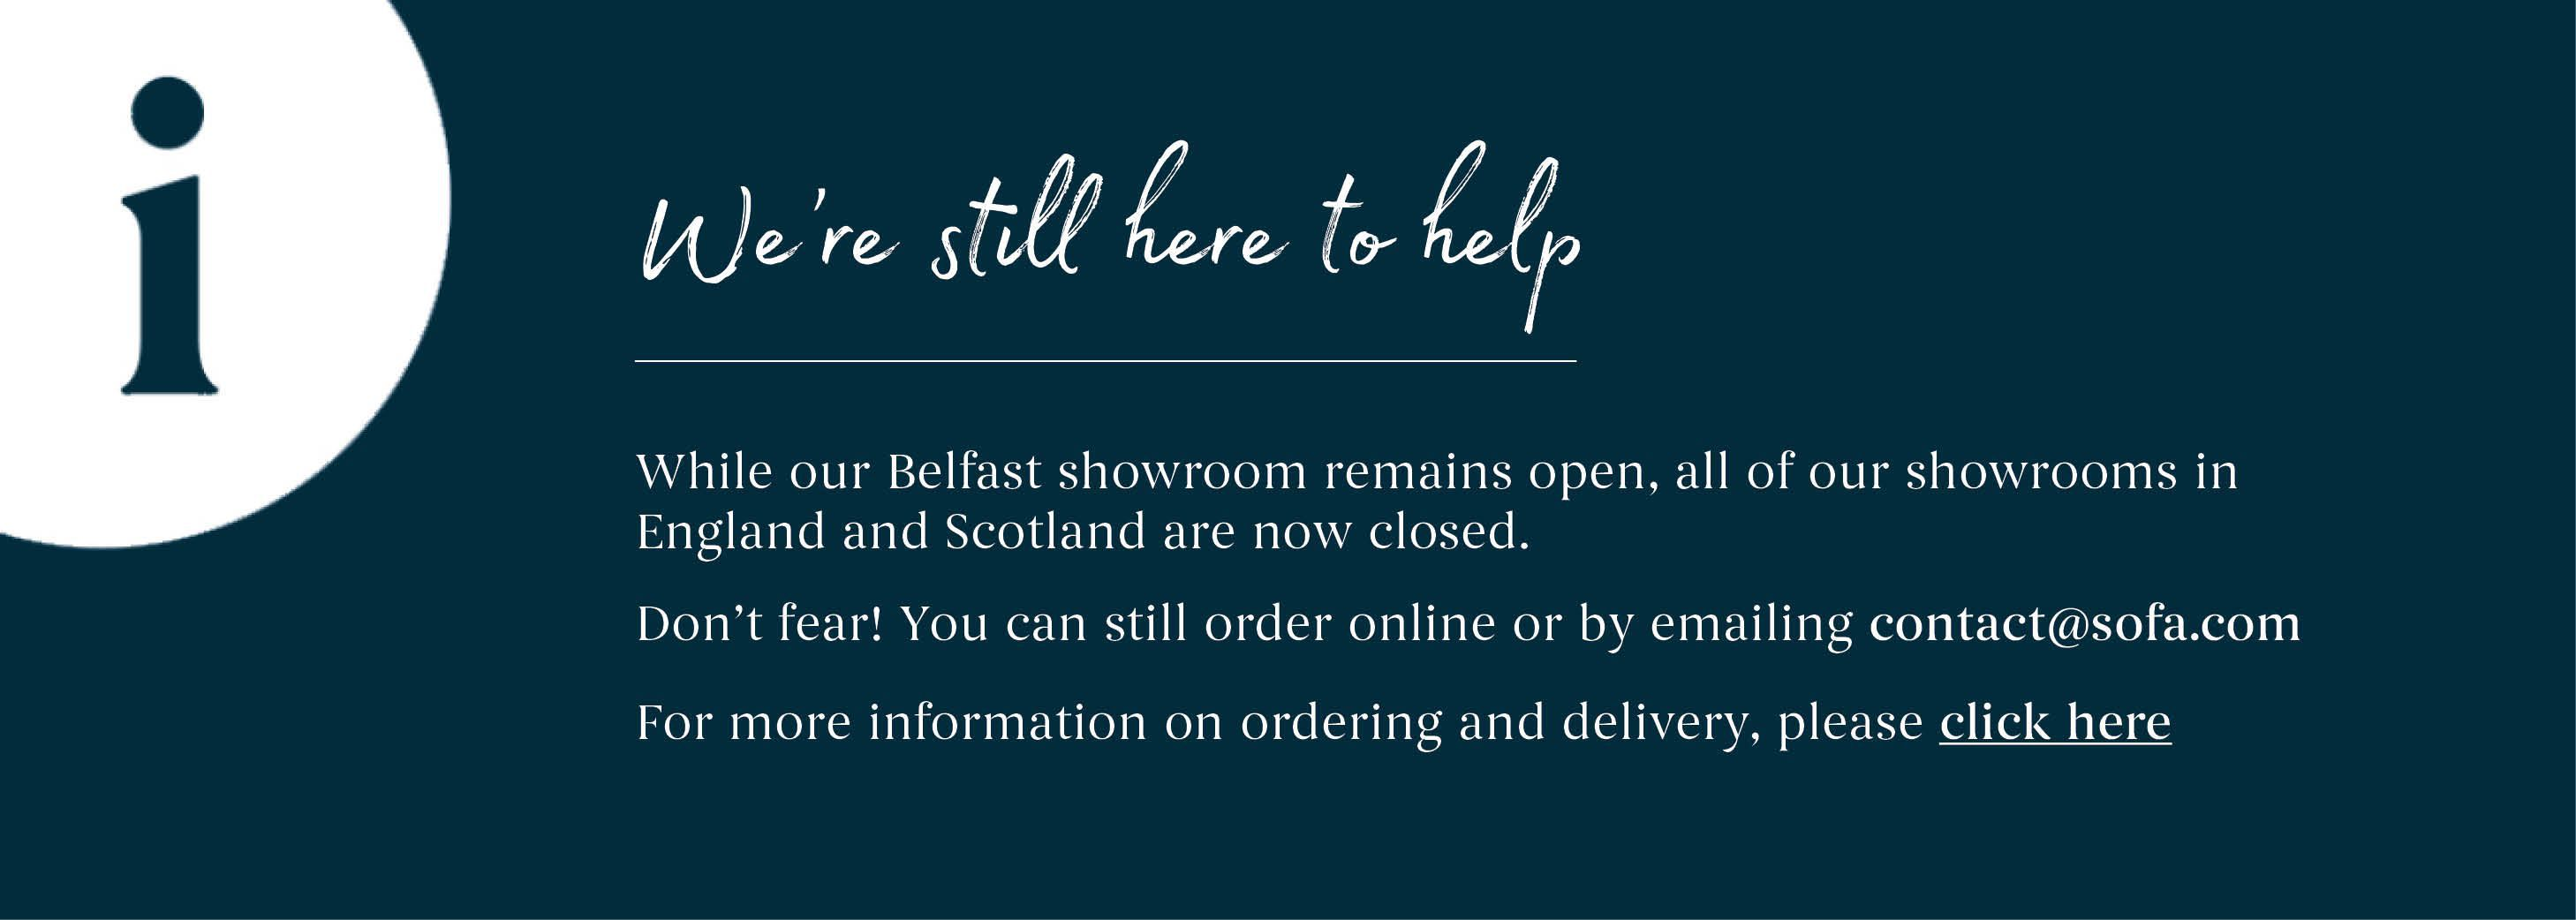 We're still here to help - While our Belfast showroom remains open, all of our showrooms in England and Scotland are now closed. For more information please click here.